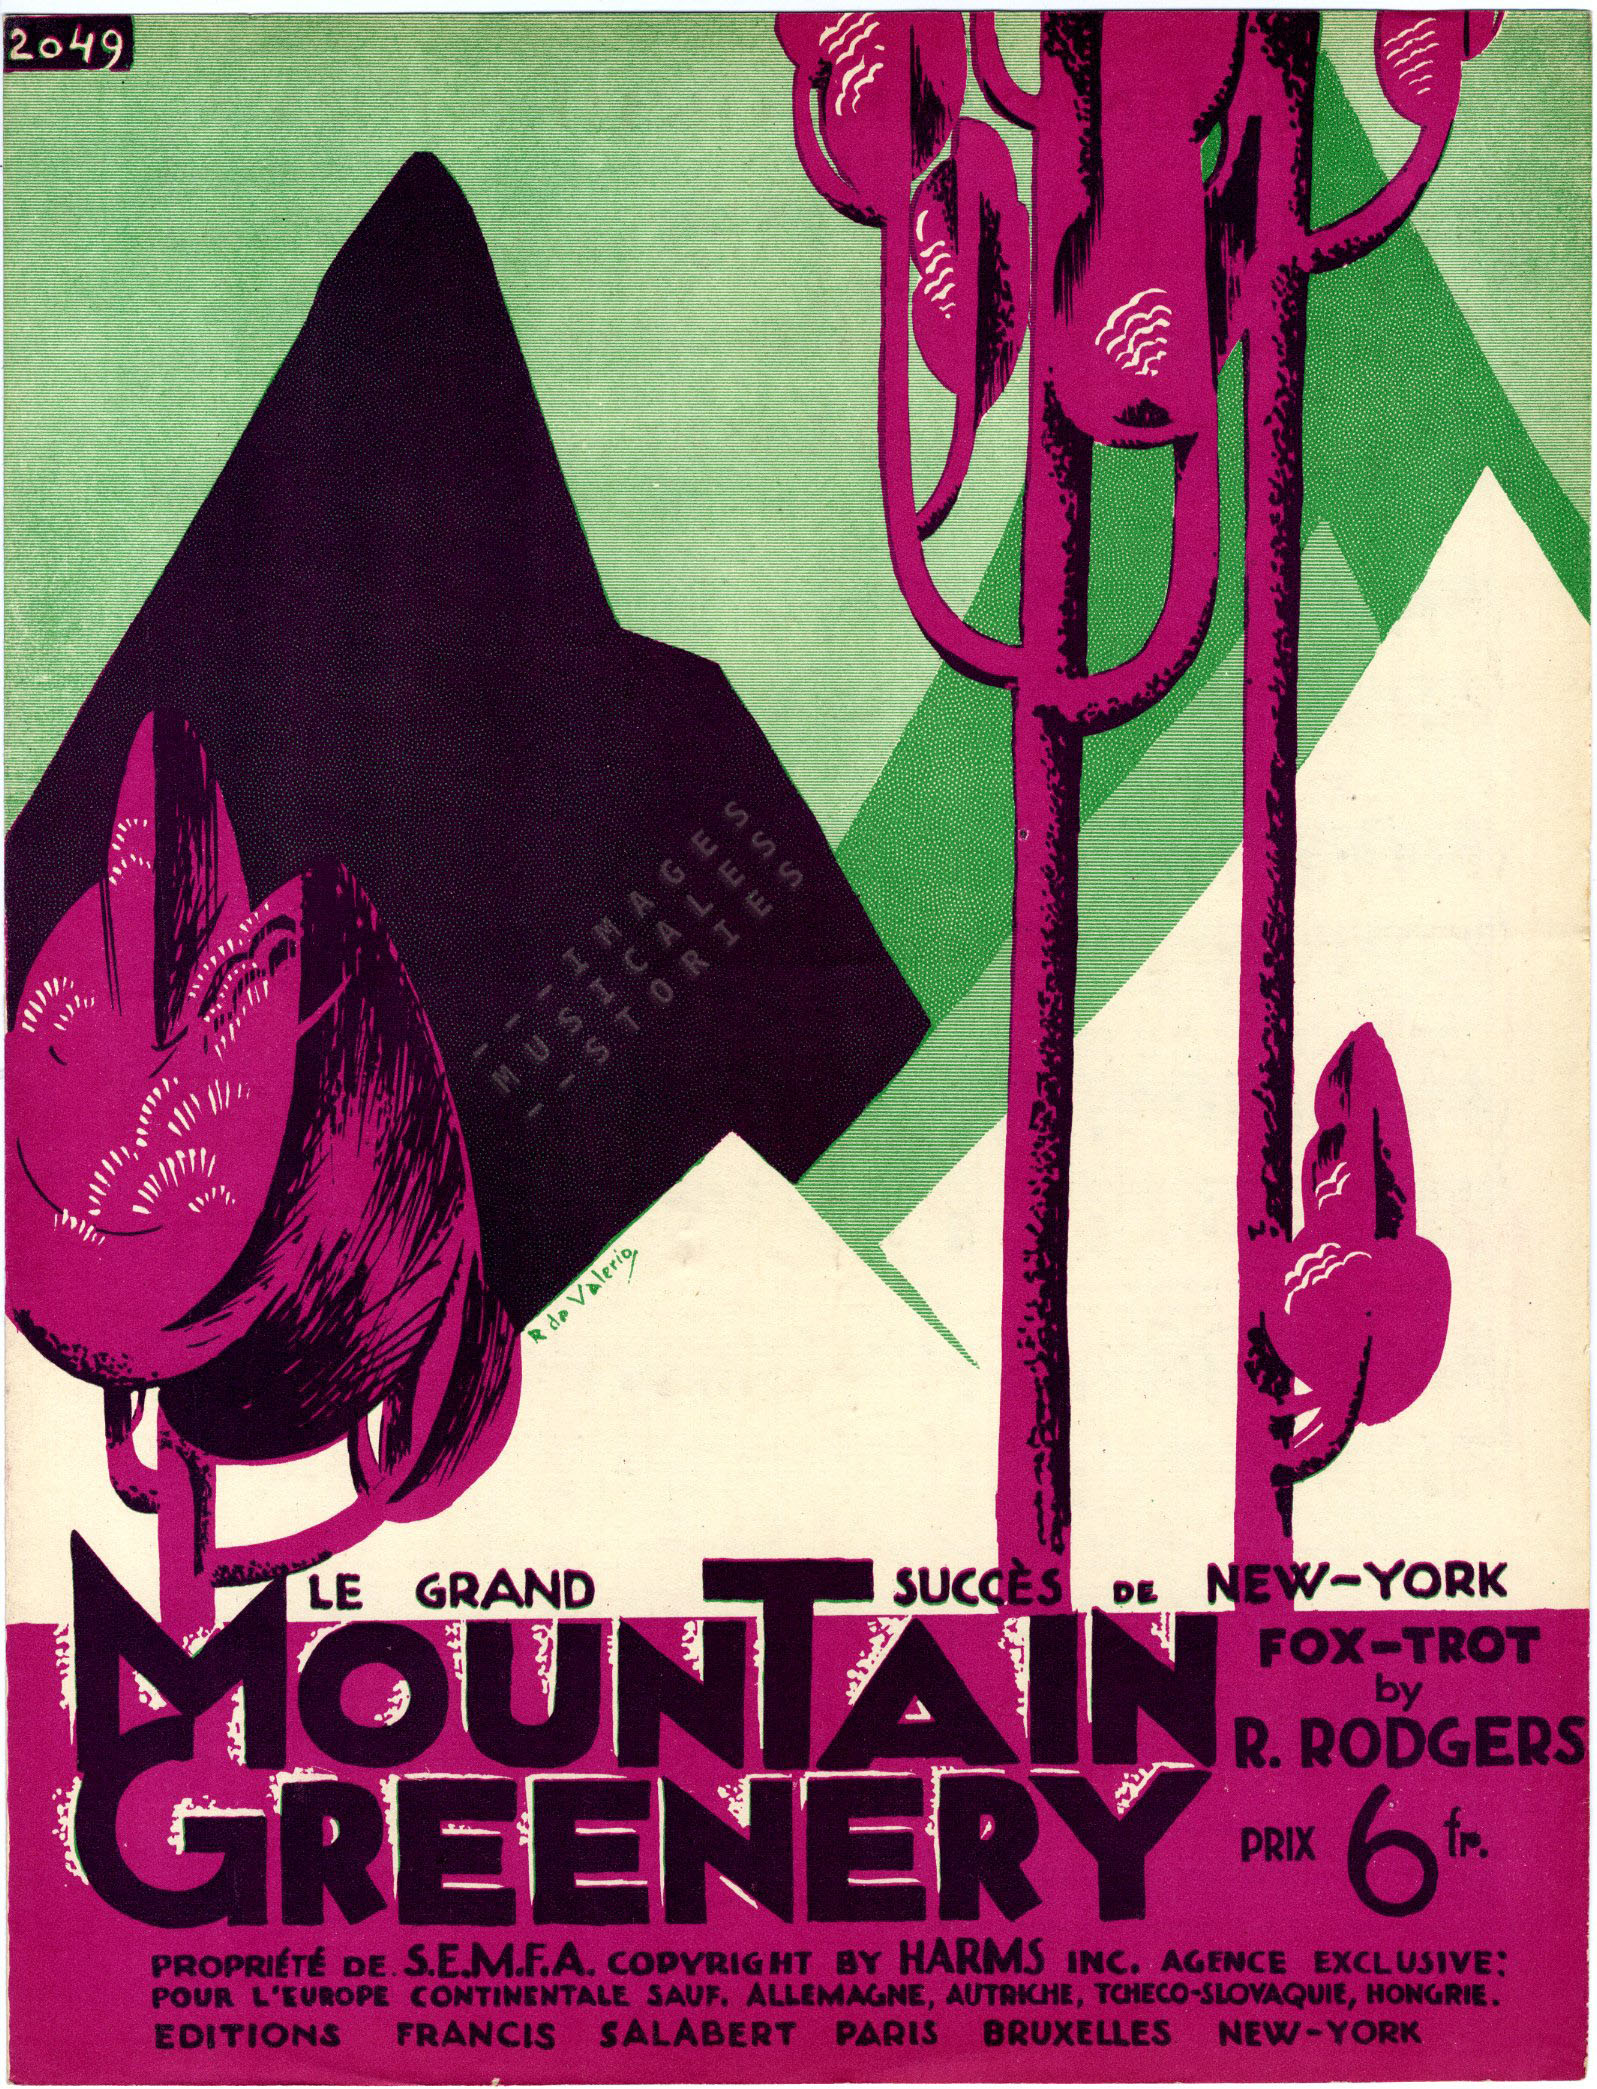 Mountain Greenery: sheet music illustration by Roger de Valerio